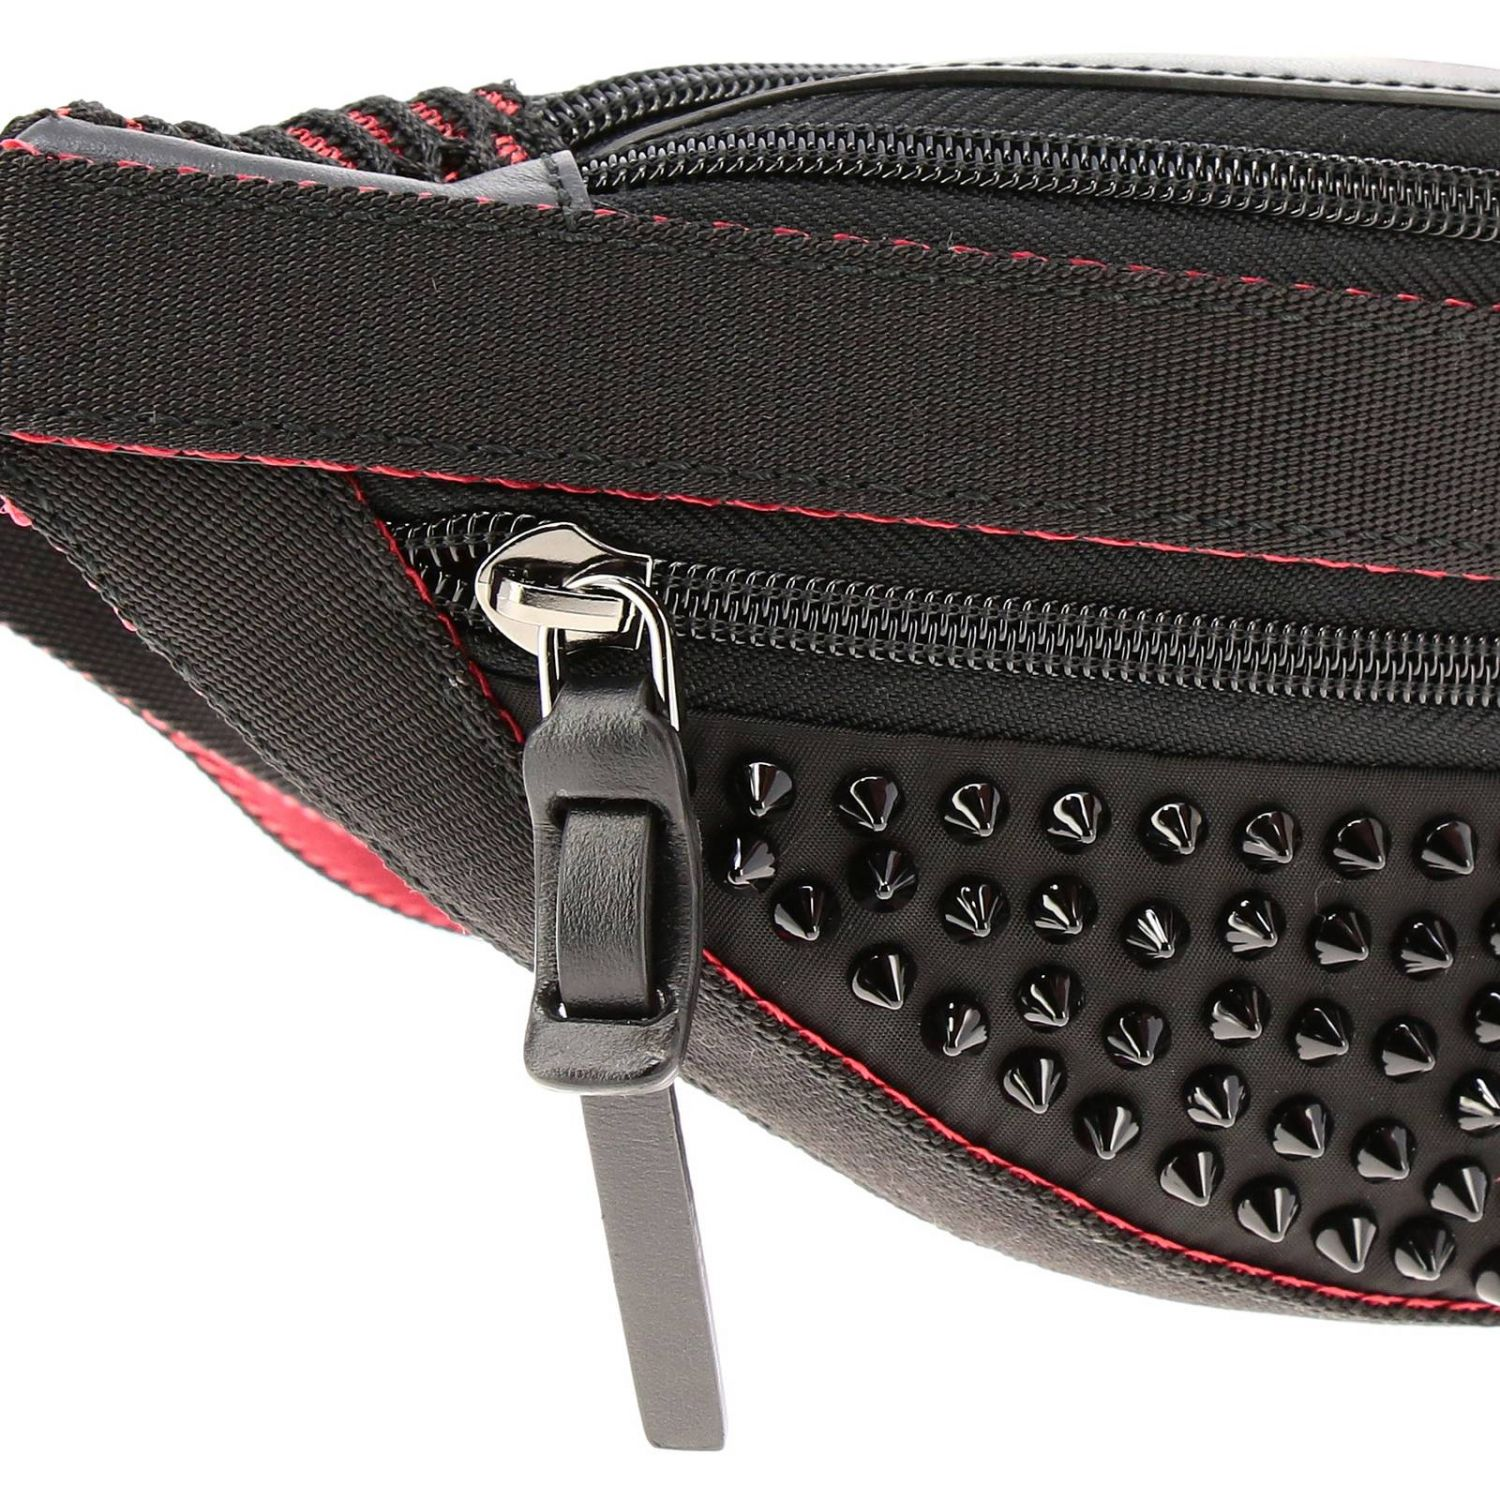 Parisnyc Christian Louboutin belt bag in nylon and leather with studs black 4